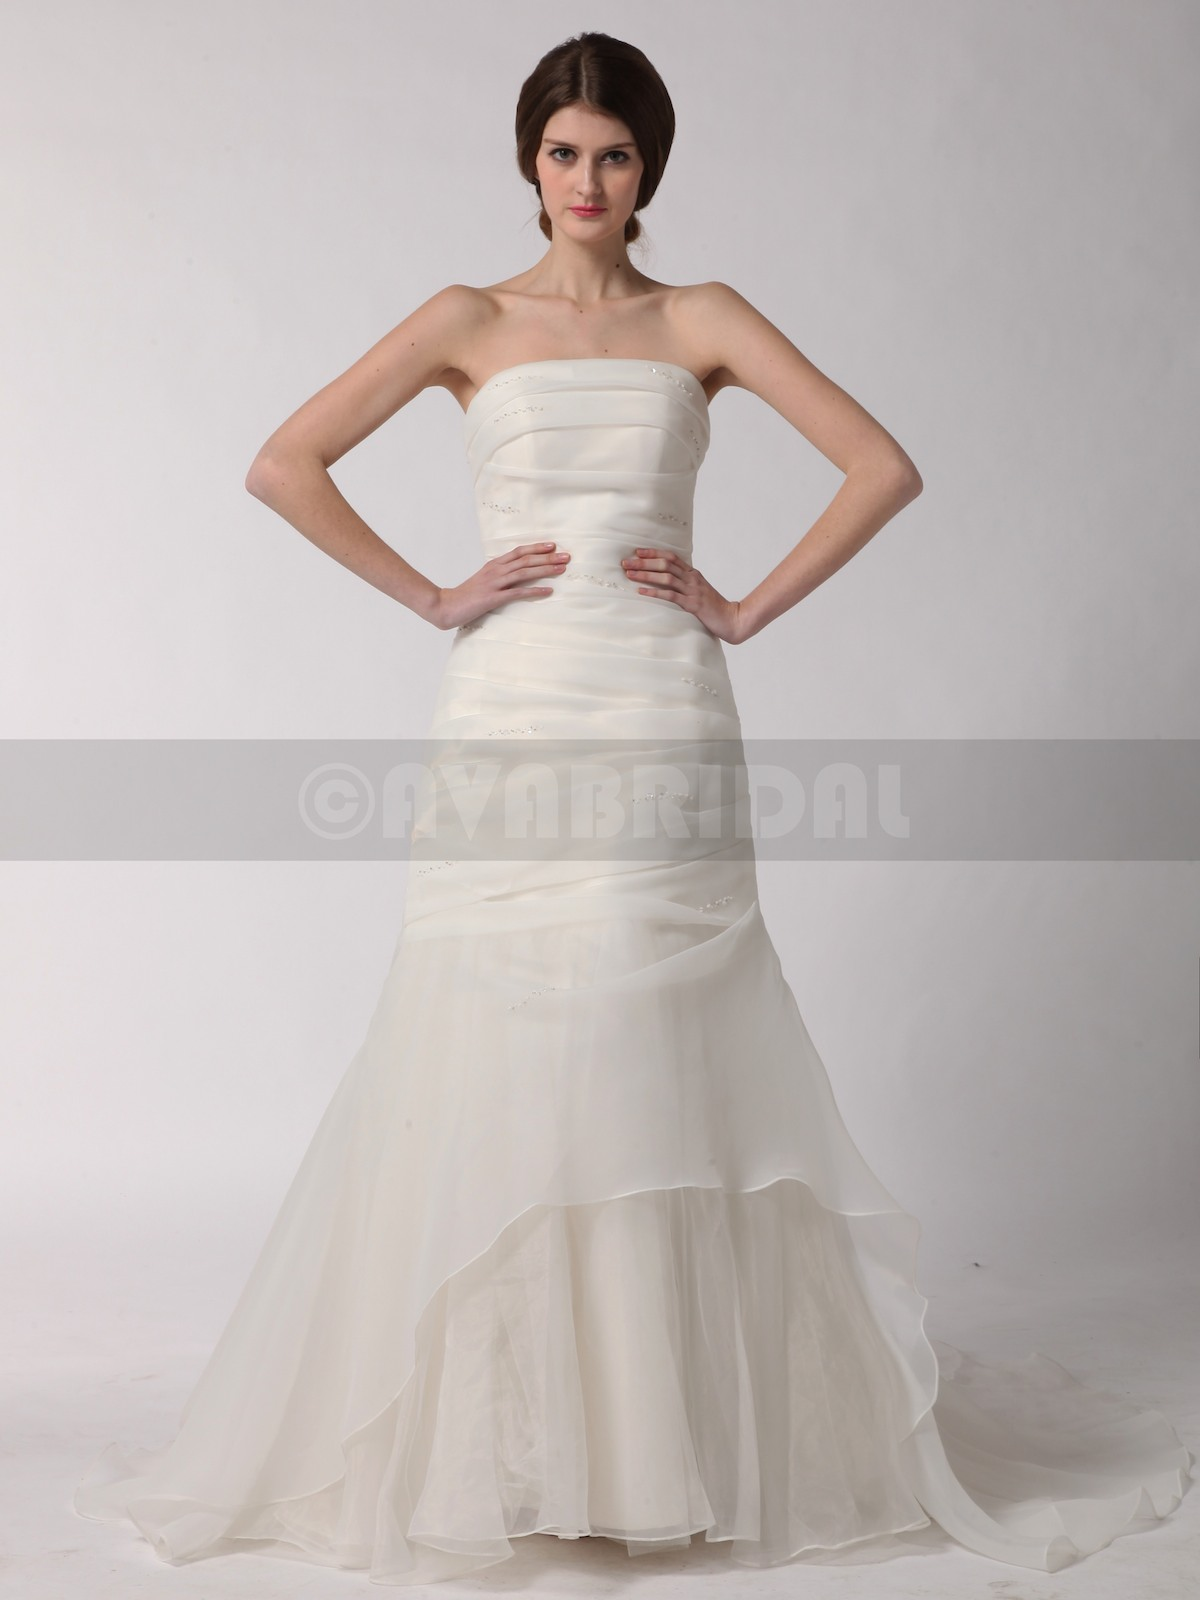 Elegant Wedding Dress - Amanda - Front